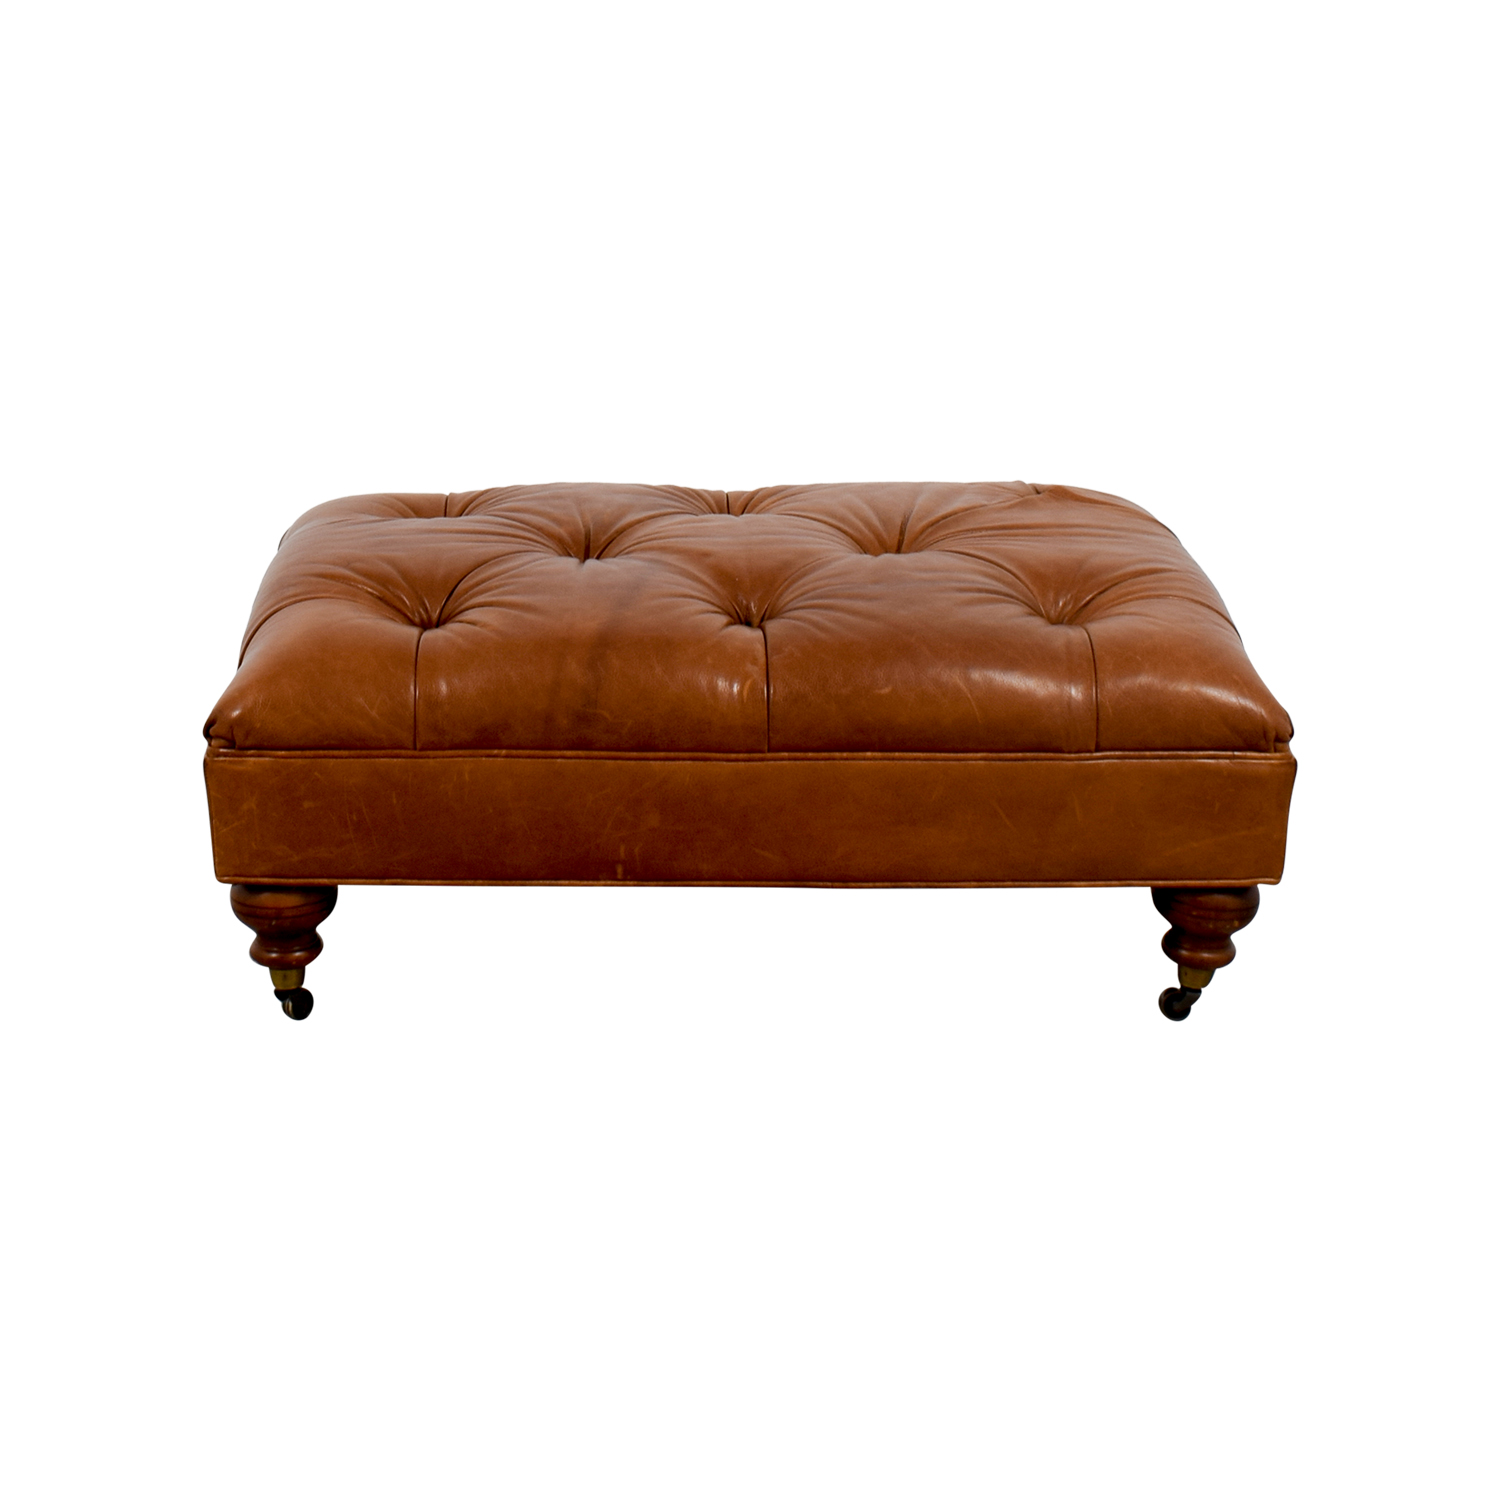 Ethan Allen Anton Tufted Leather Ottoman / Chairs